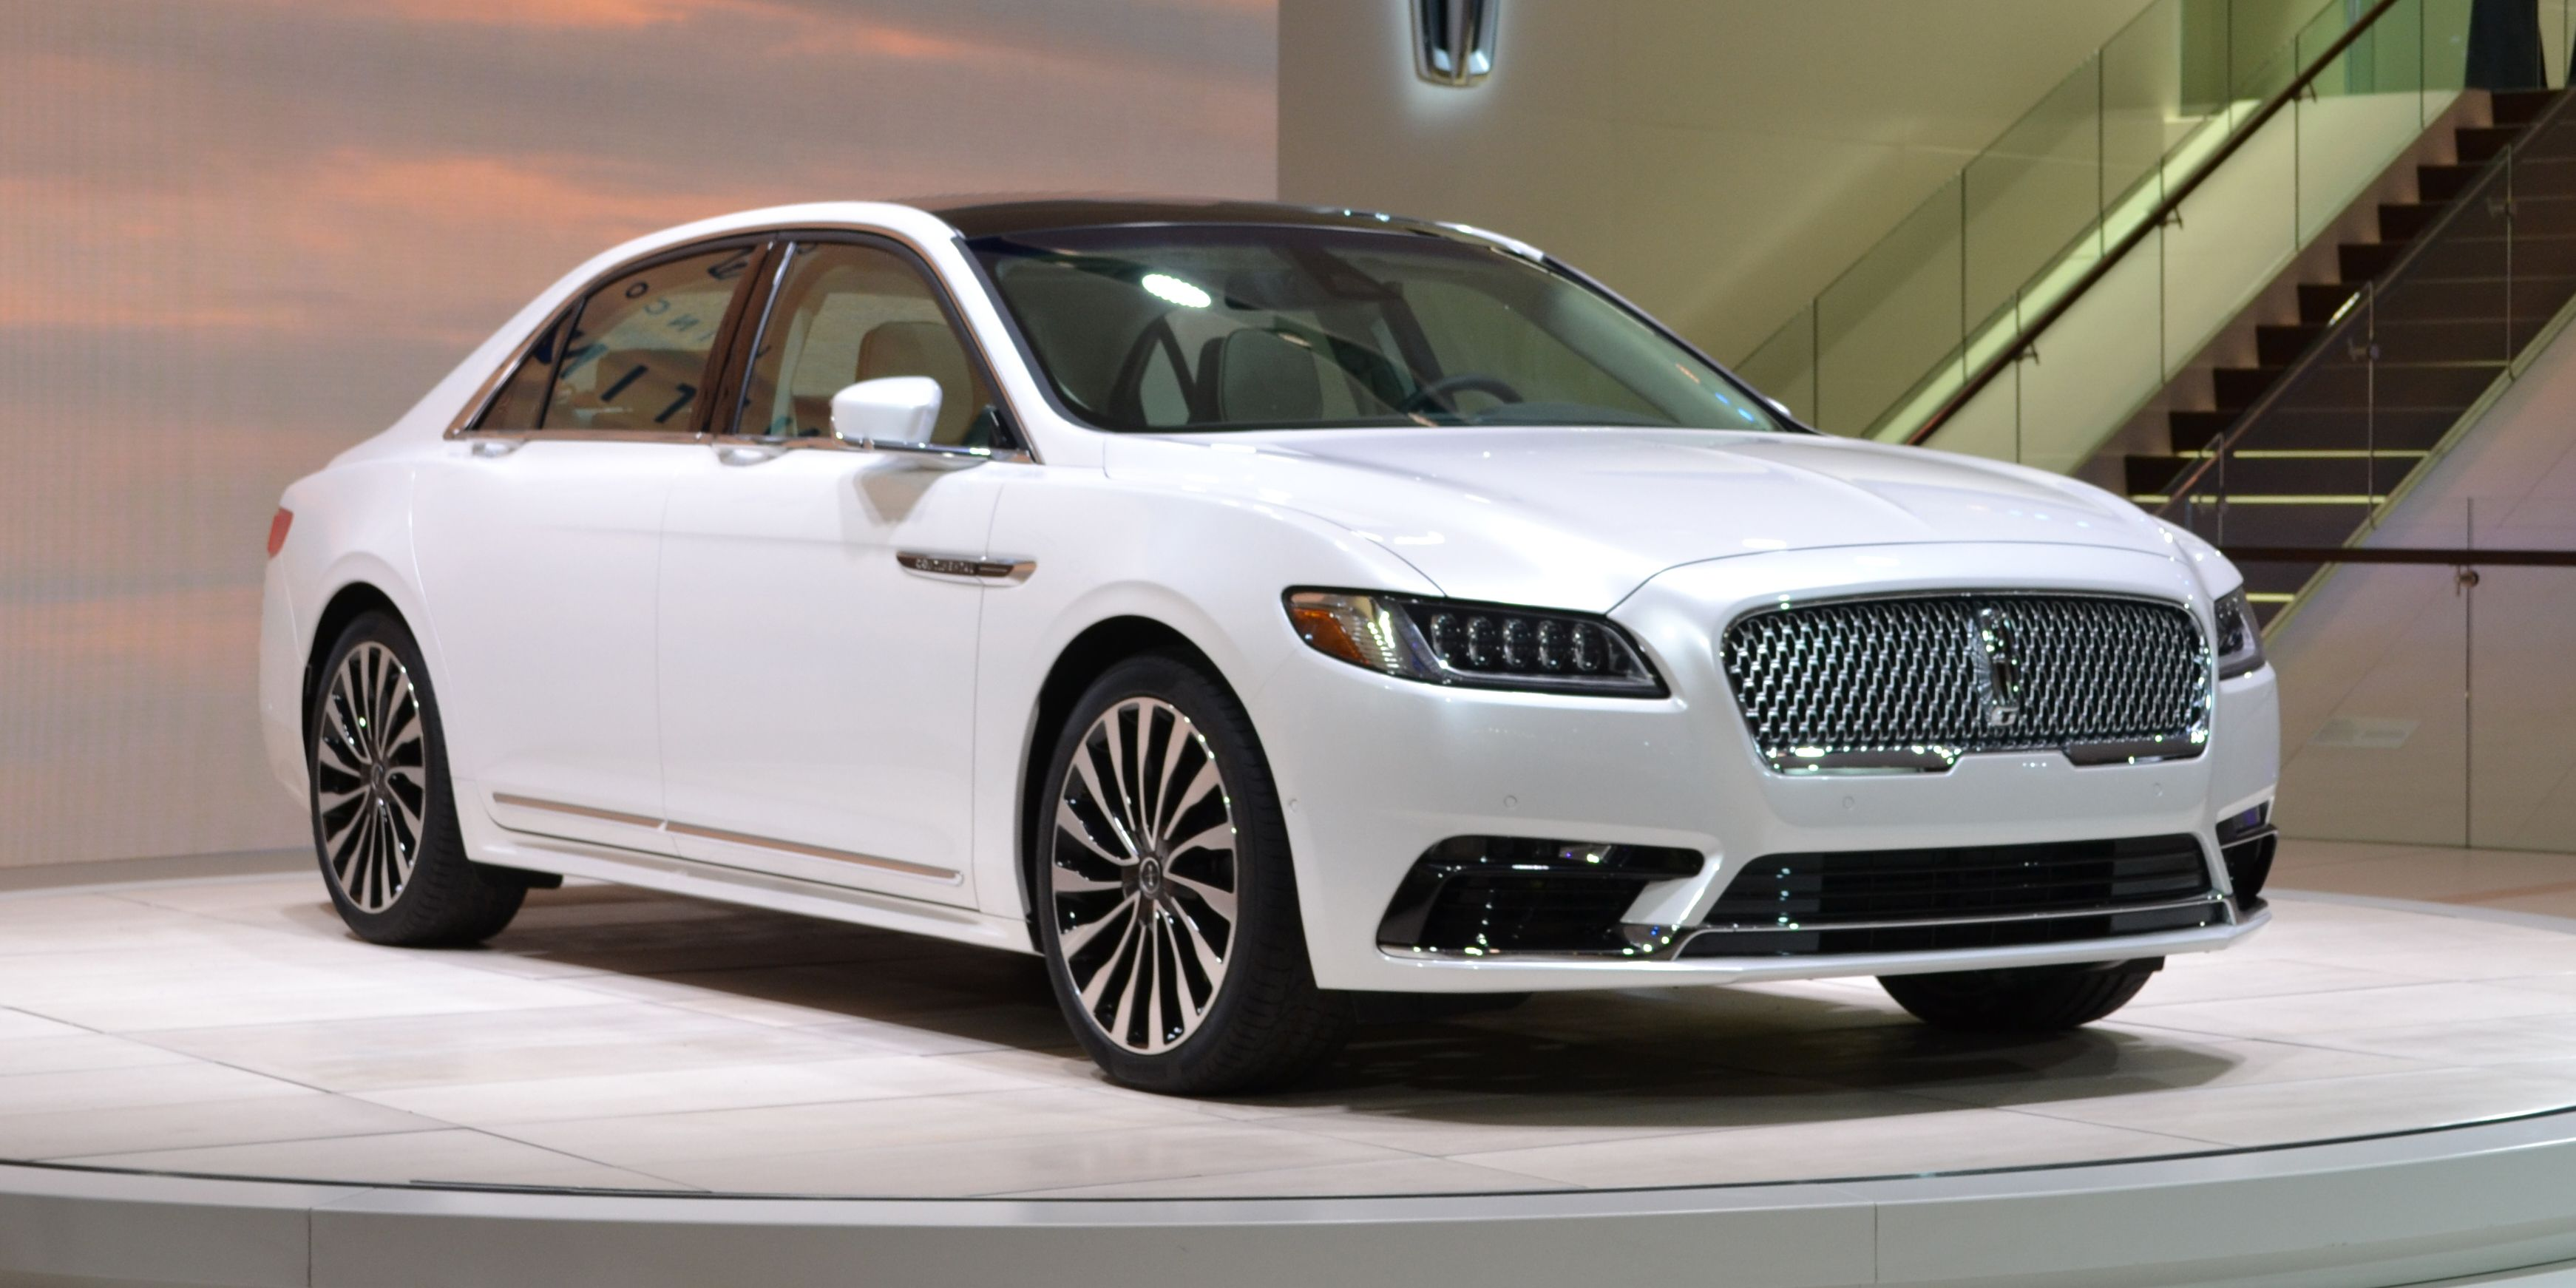 1452607822-linc1 Outstanding Lincoln Continental New York Auto Show Cars Trend